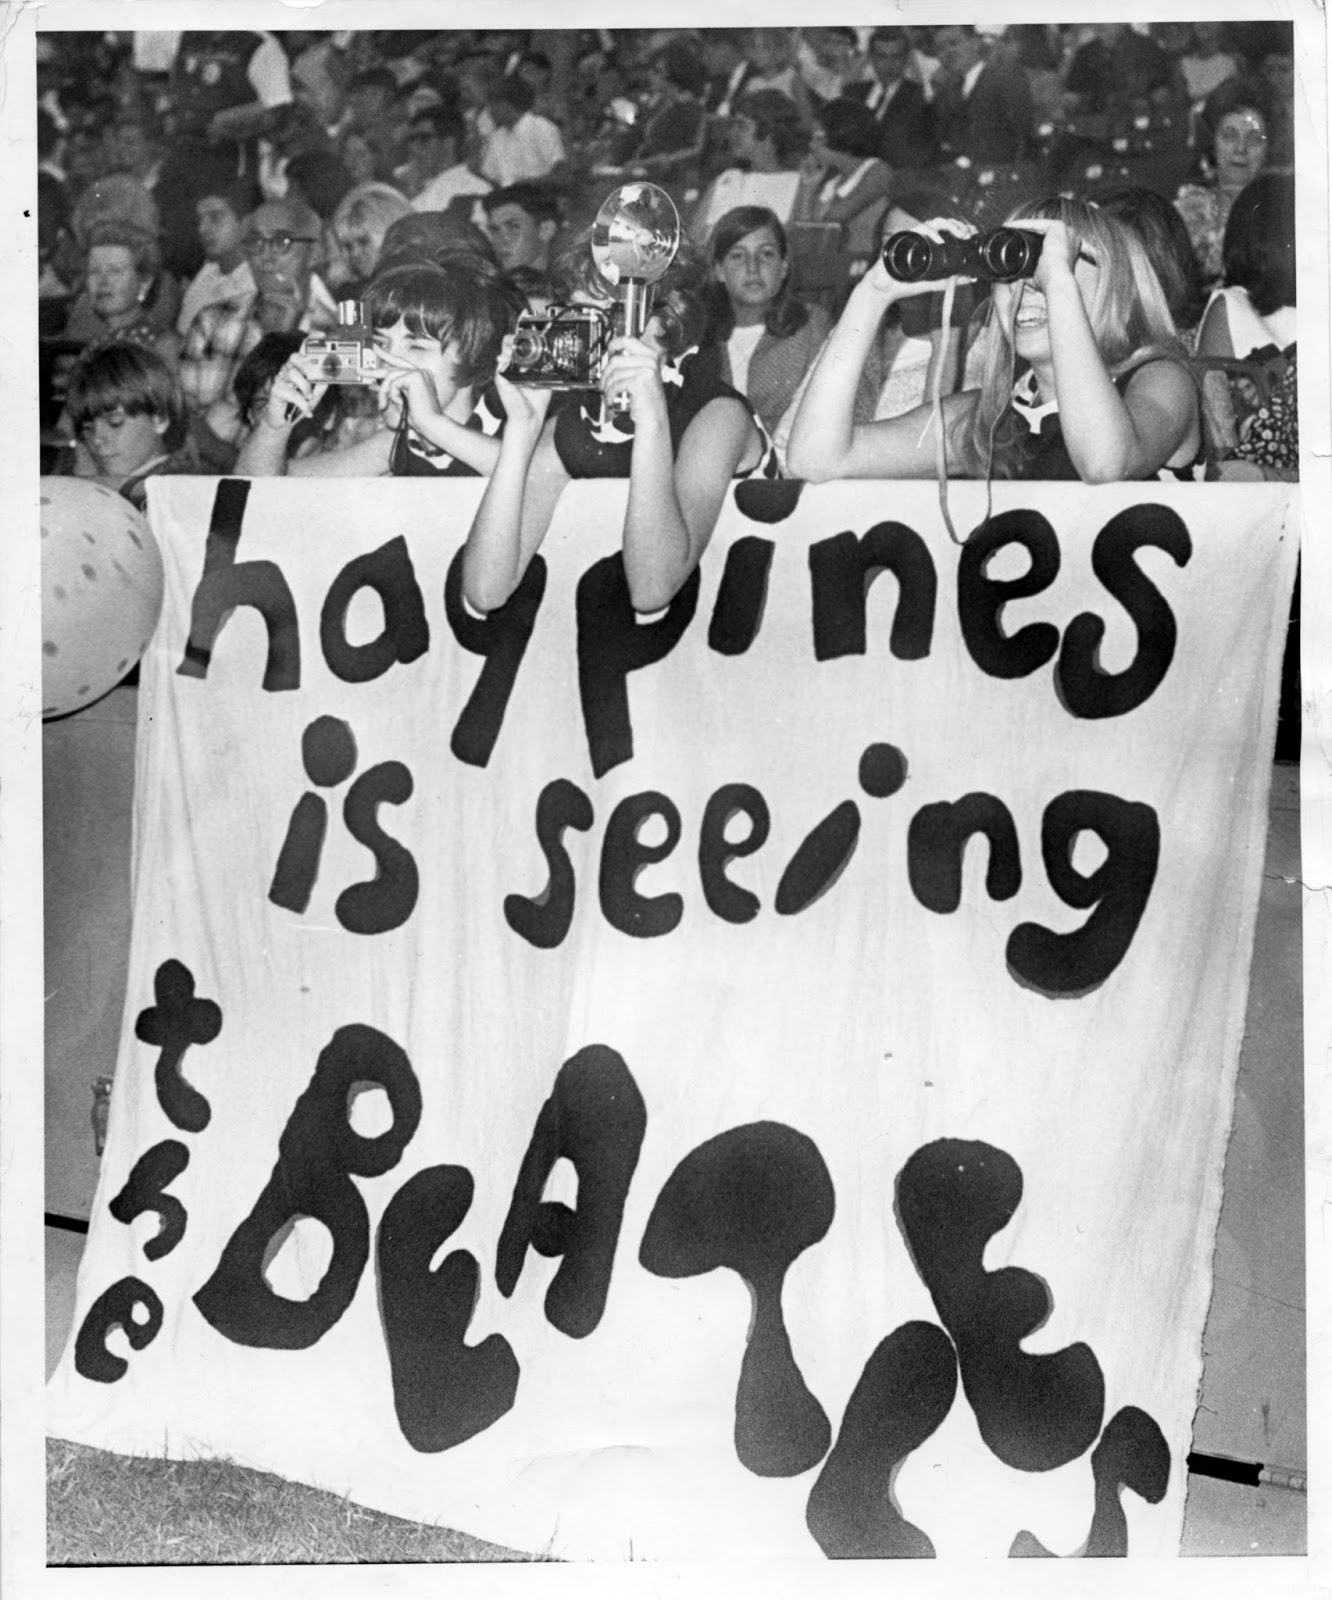 Gmail themes beatles - Sara S Book Happiness Is Seeing The Beatles Beatlemania In St Louis